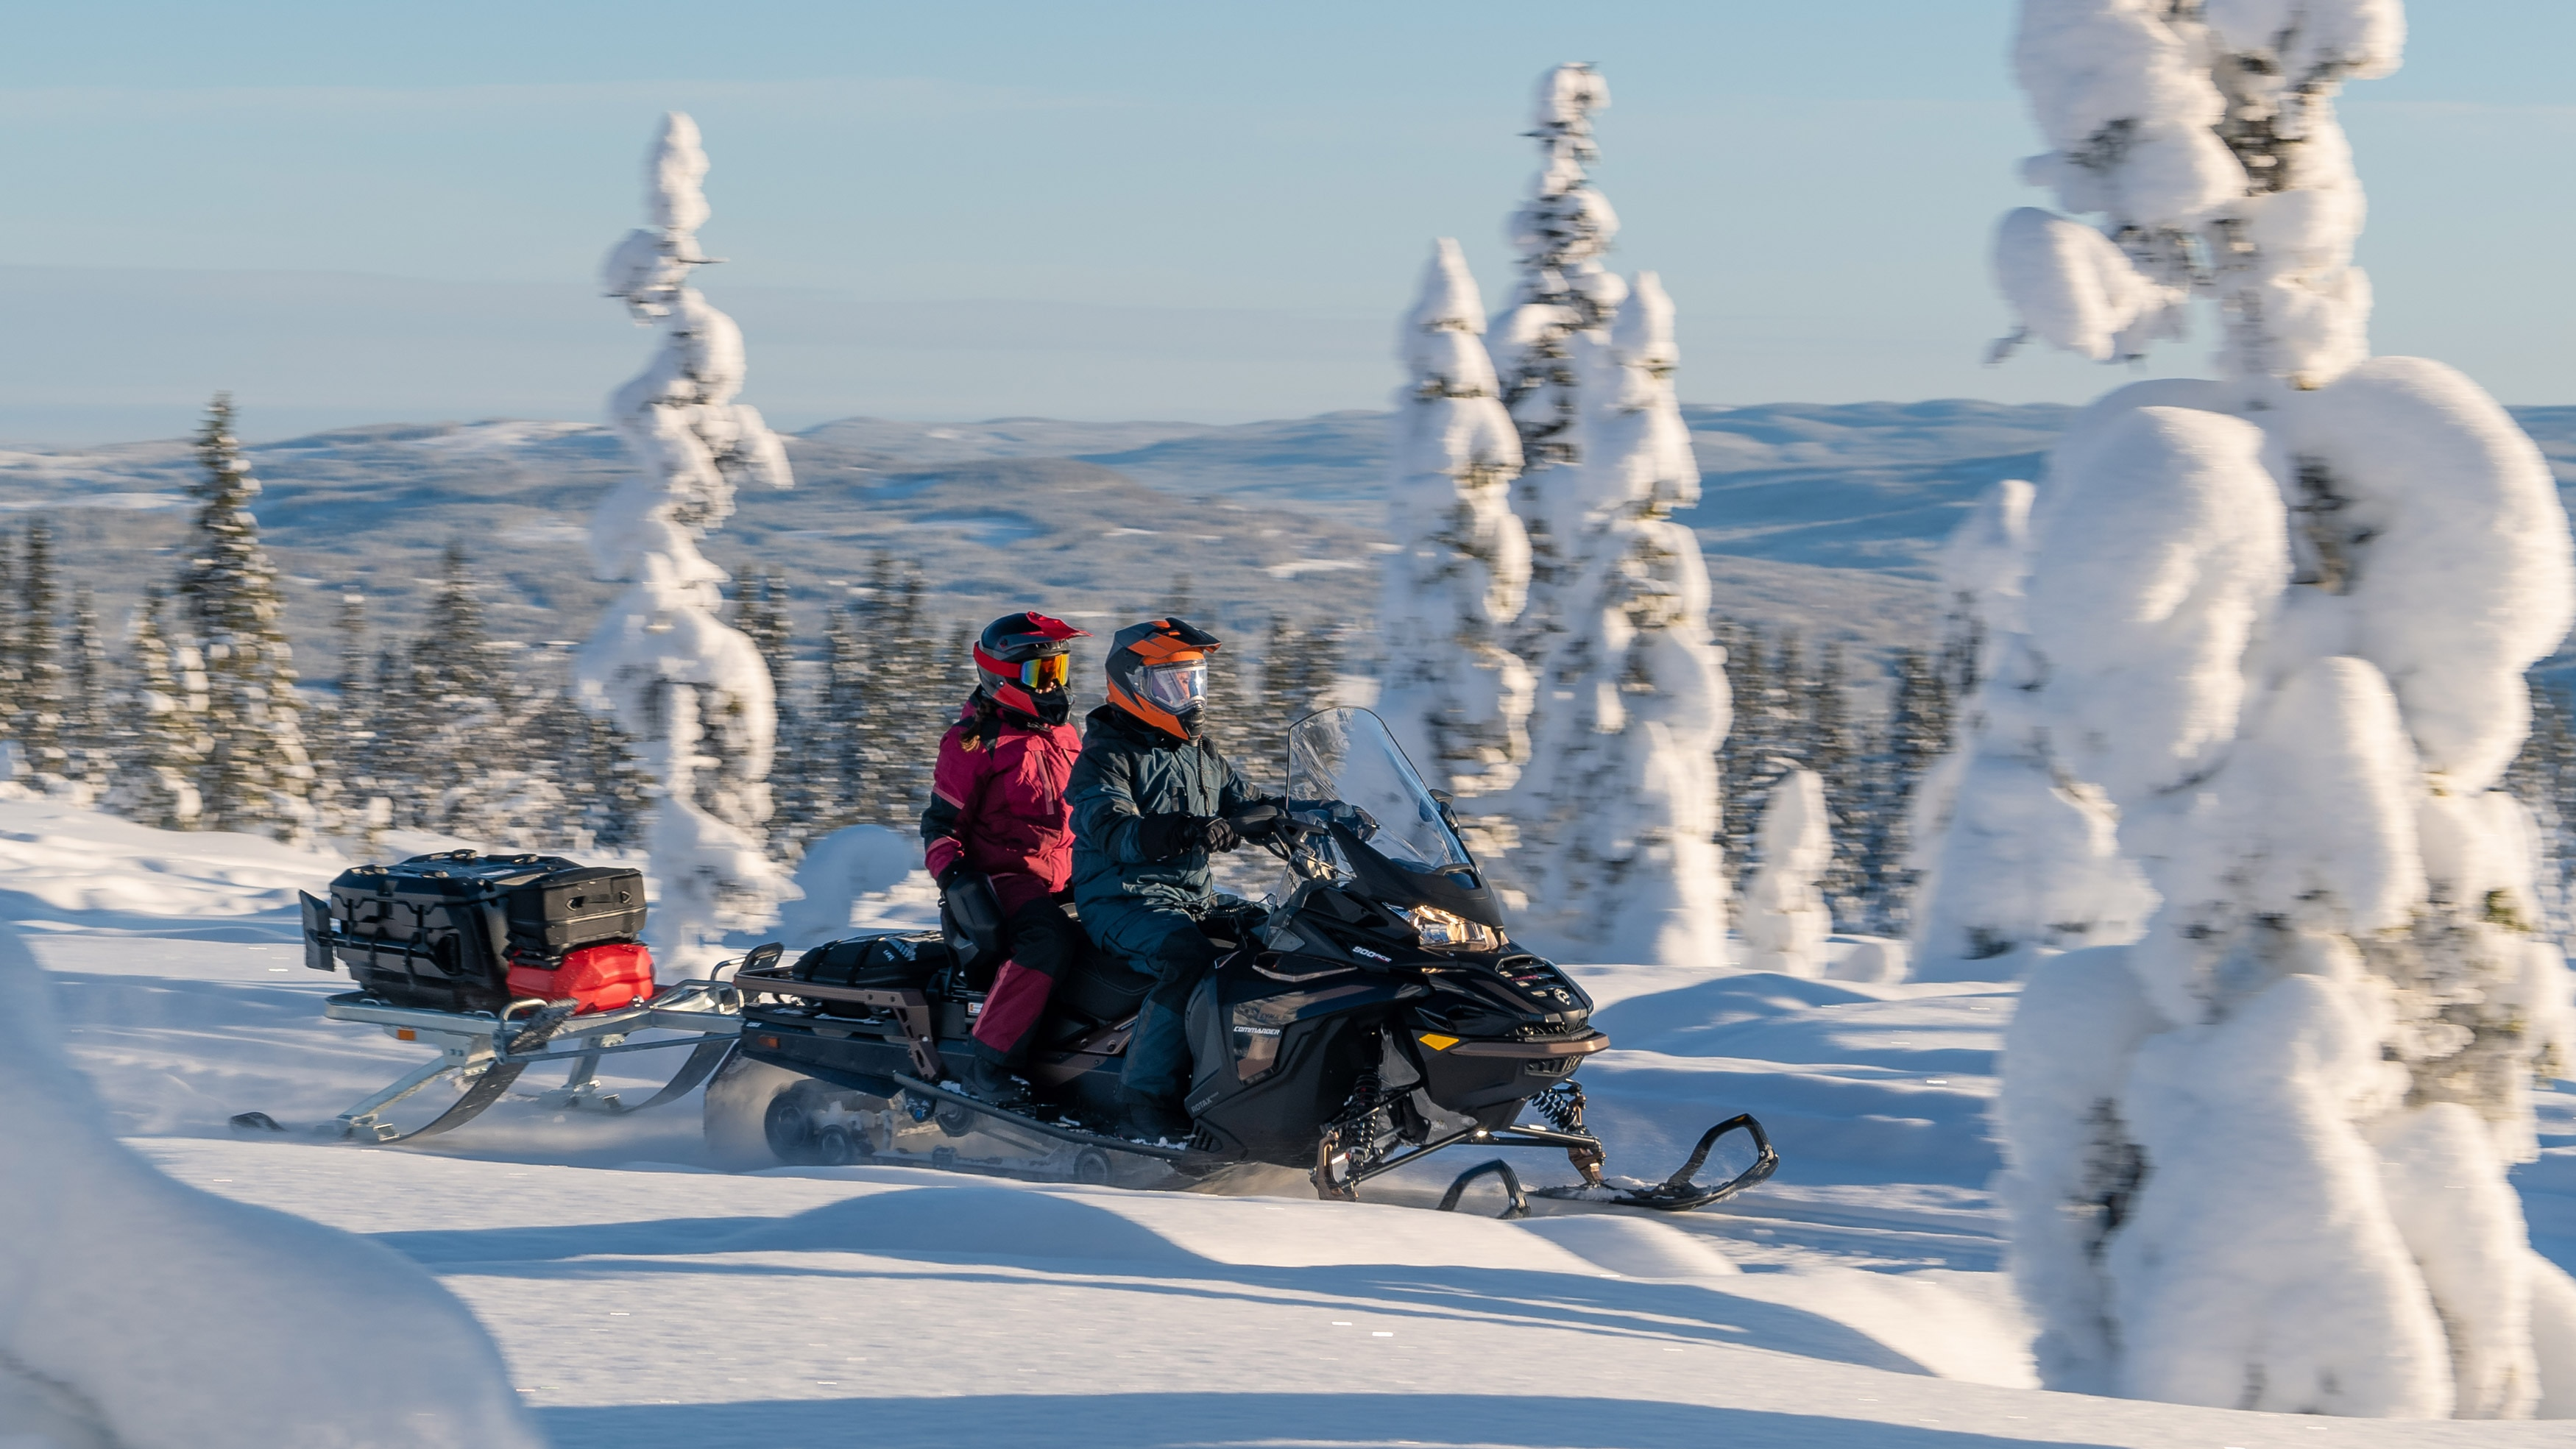 Lynx Commander Grand Tourer snowmobile two up riding on trail in snowy forest.